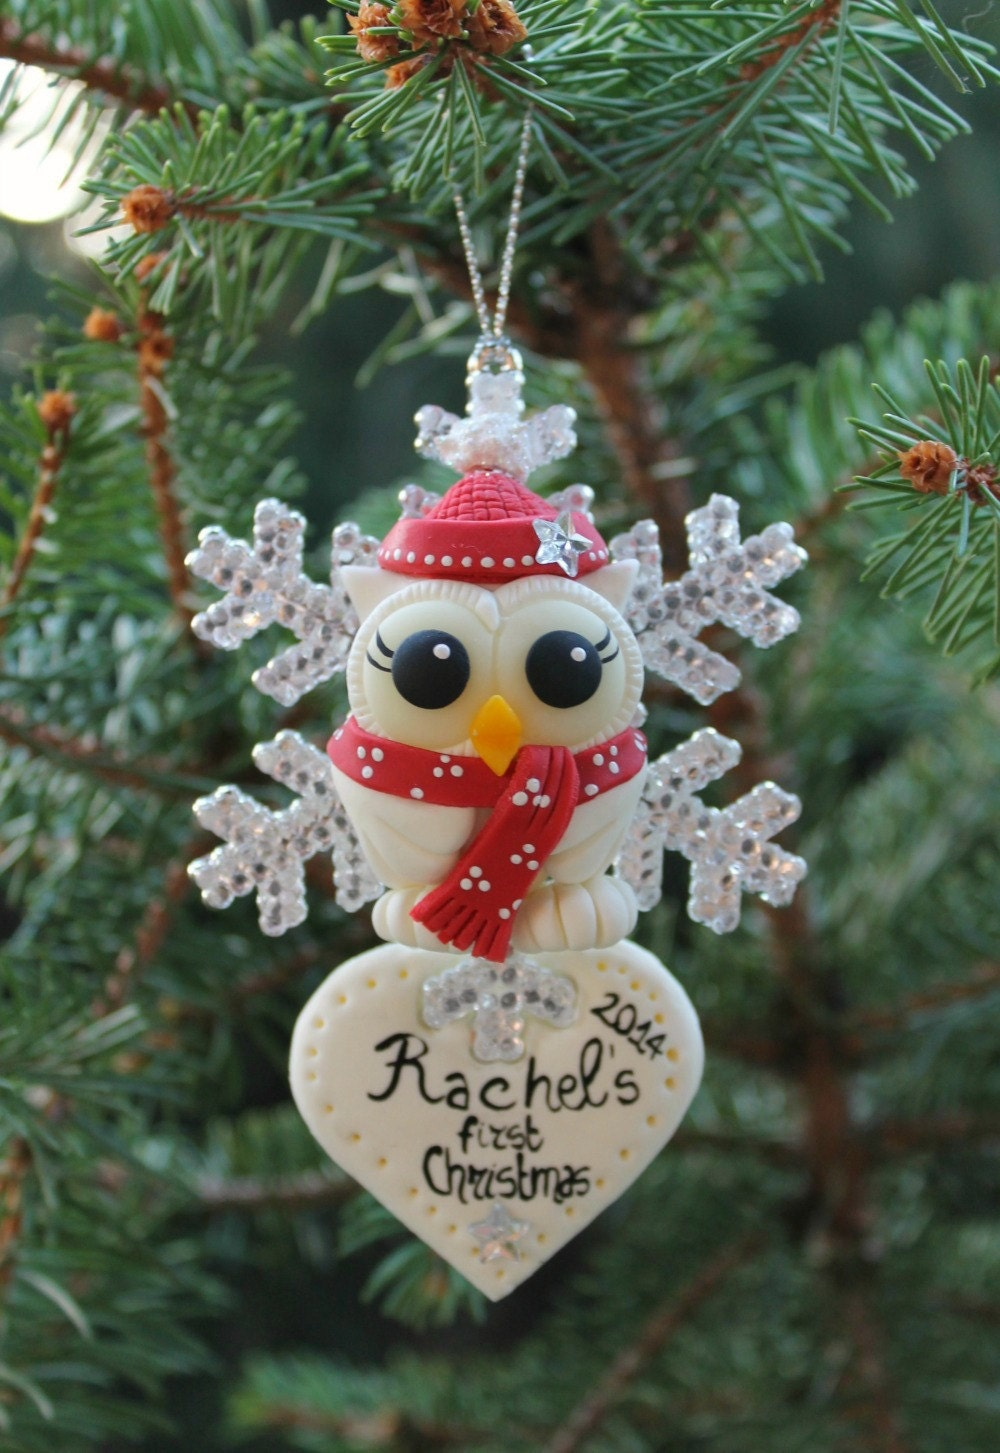 Baby 39 s first christmas ornament child holiday decor for Babys first christmas decoration